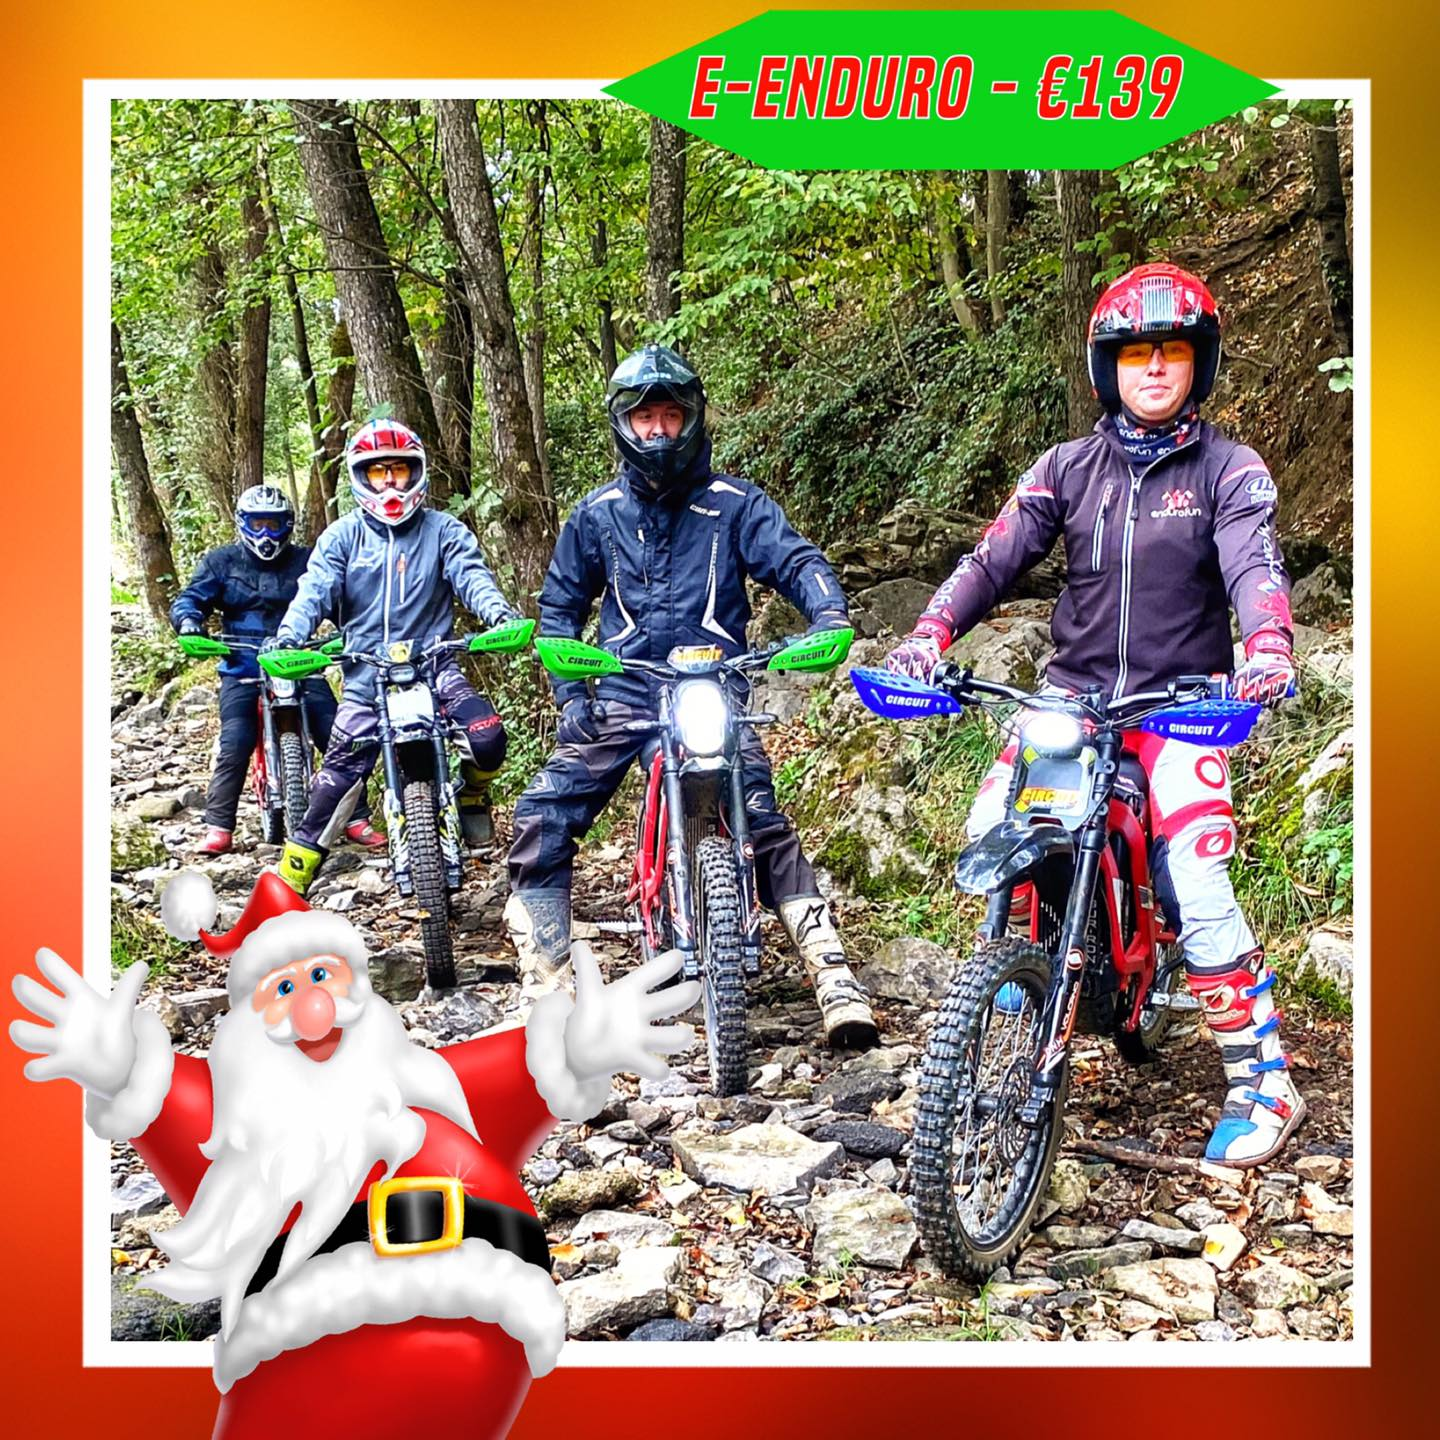 Kerst-initiaties Bilstain Endurofun 46 Surron